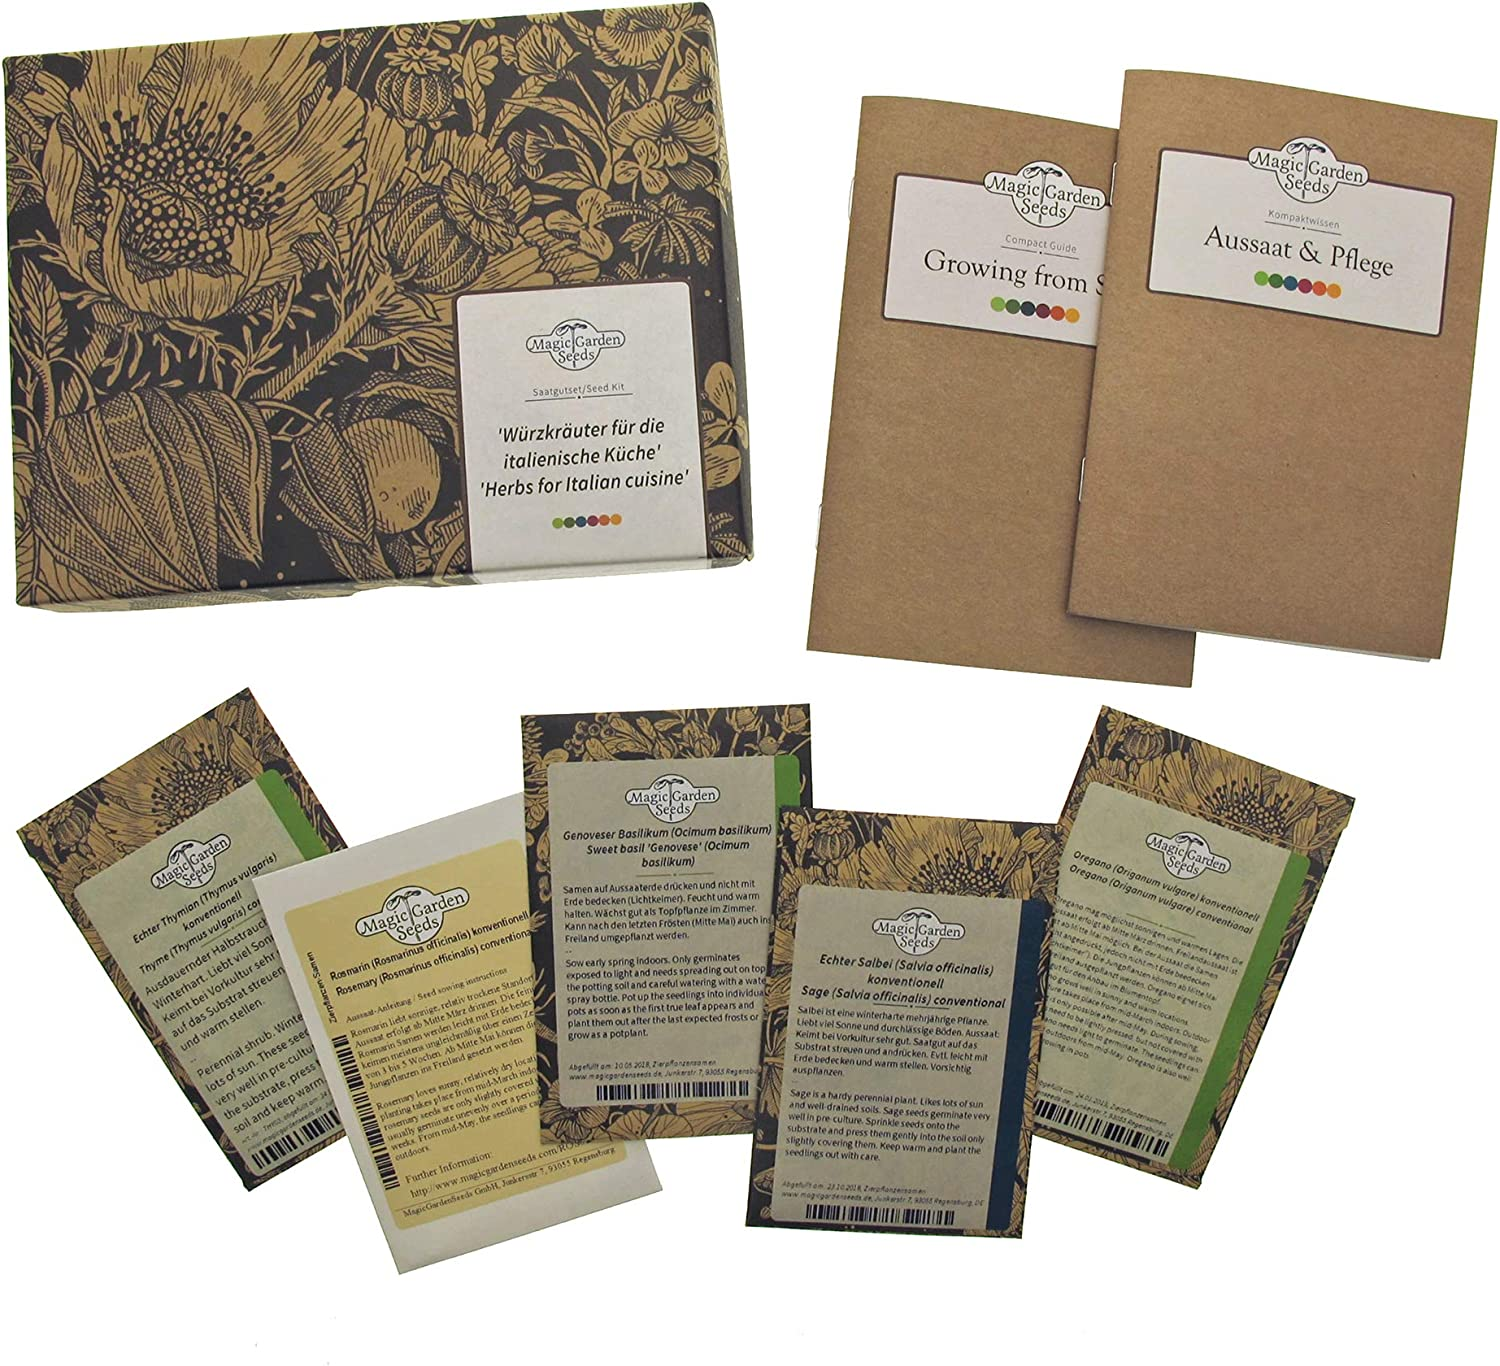 Bella Italia Herbs Seed kit Gift Box with 5 Classic Italian herb Varieties traditionally Used in antipasti Pizza and Pasta Recipes